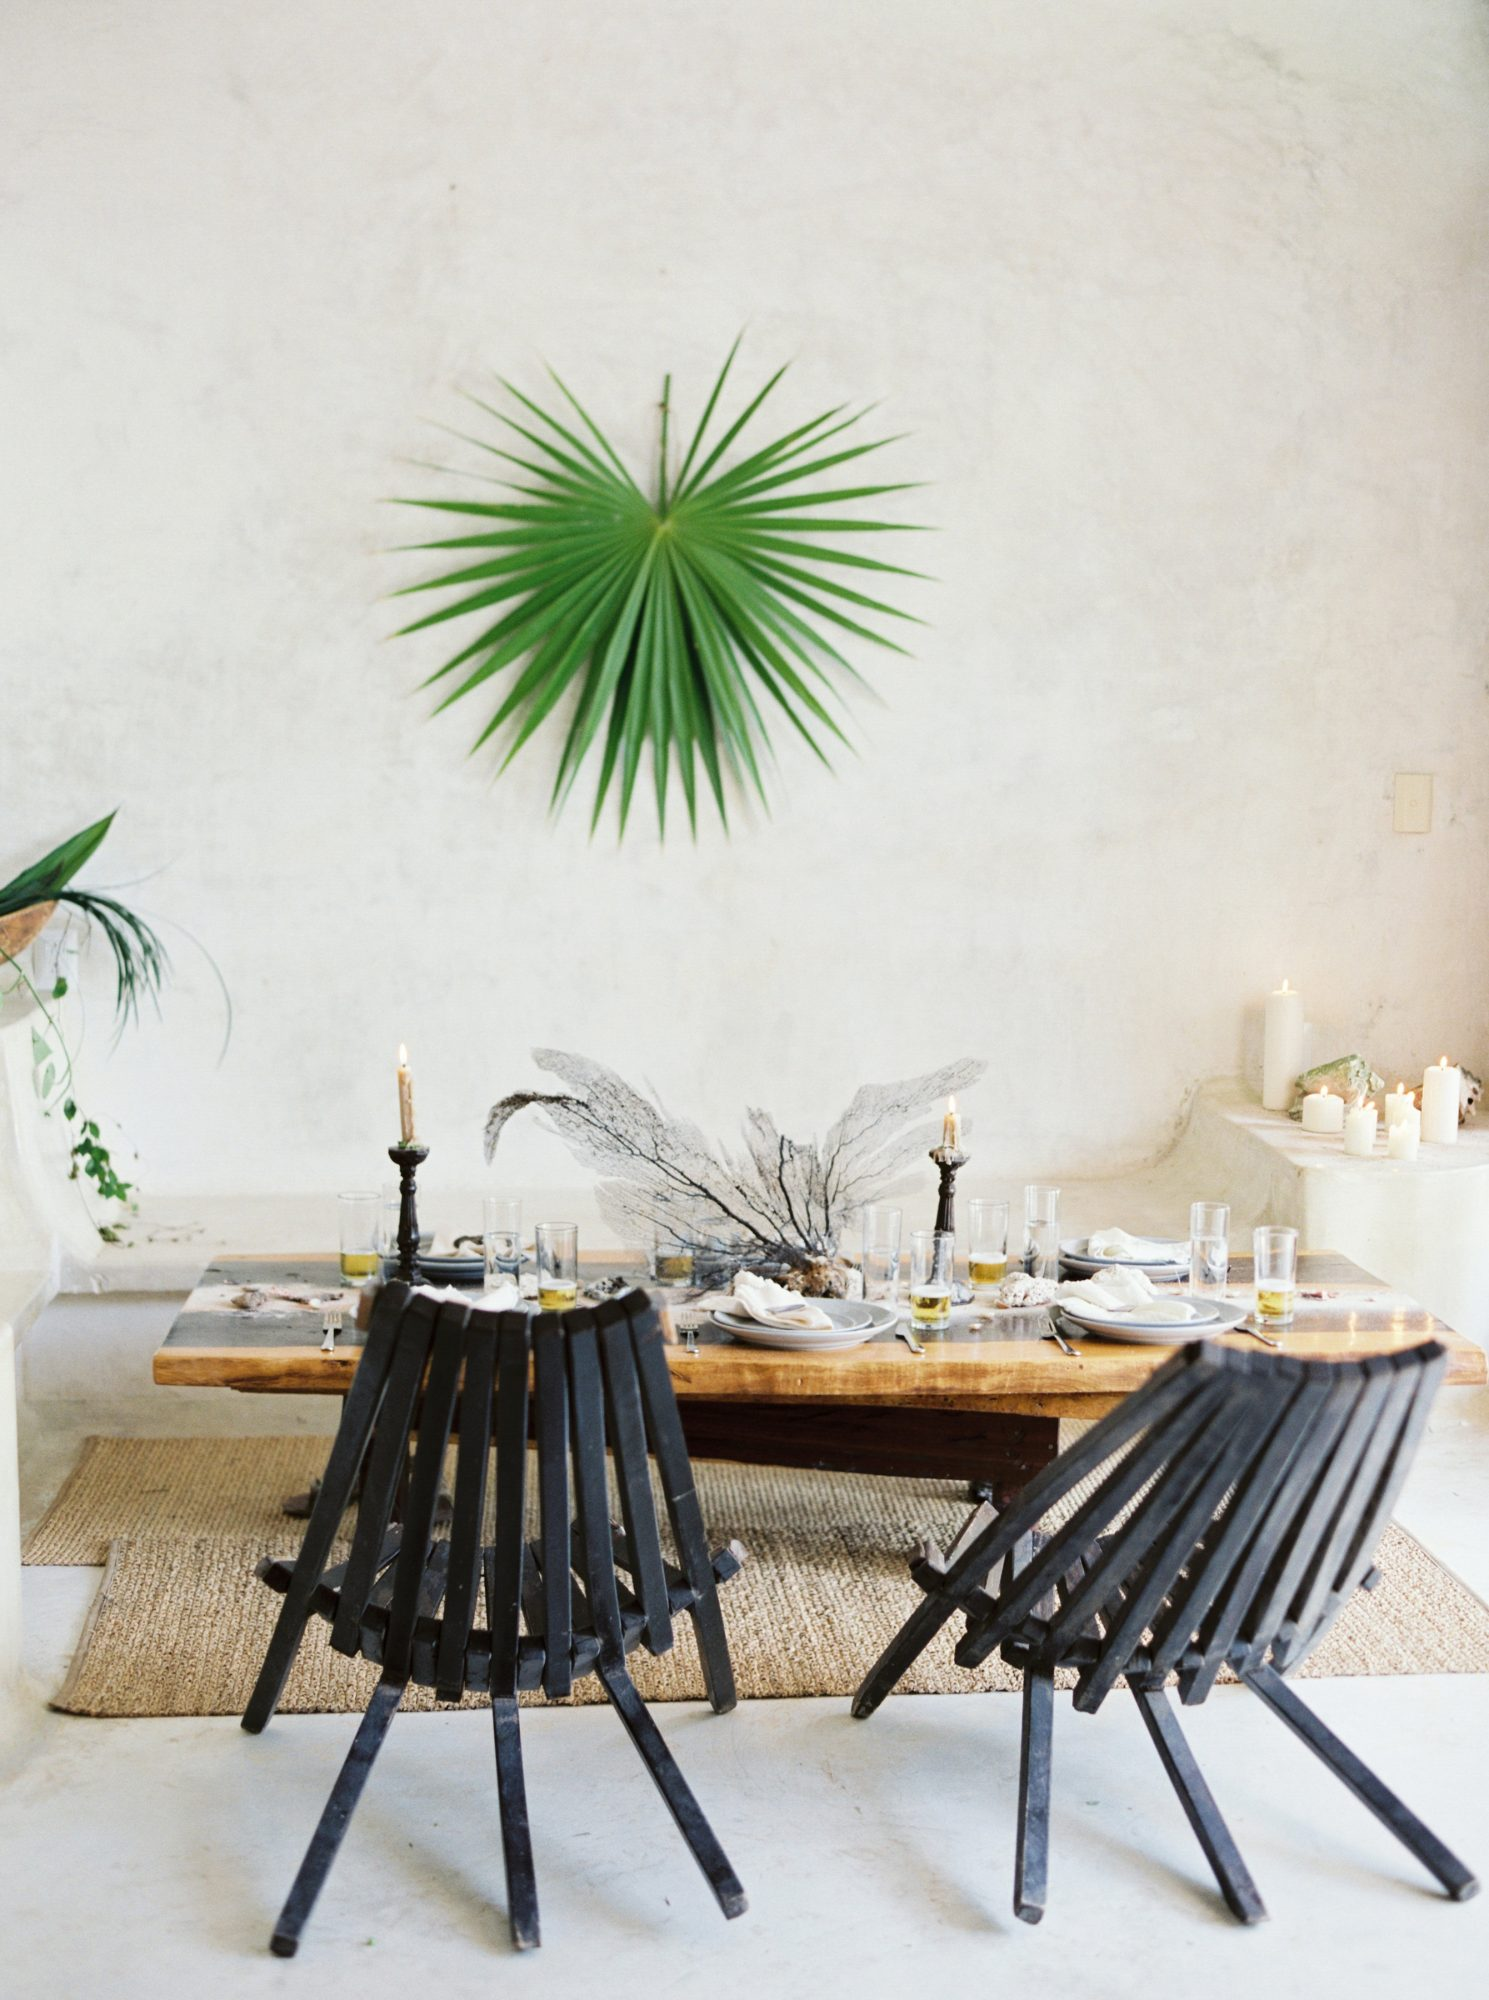 Spiked greenery on white wall